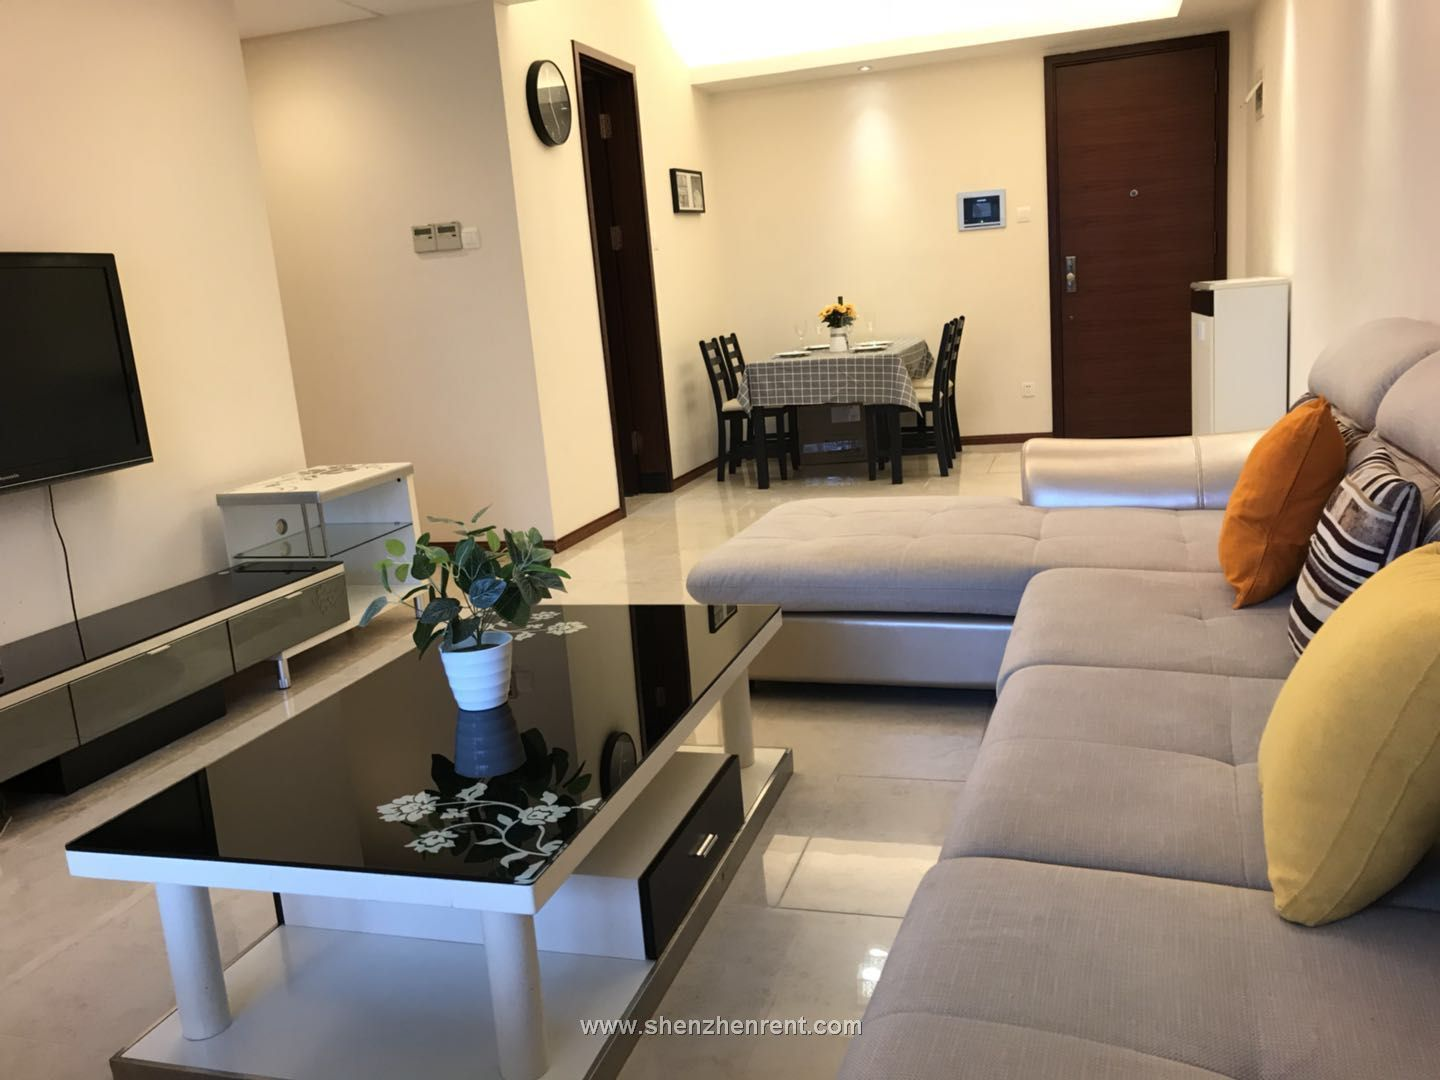 Renovated 2 bedrooms apartment in mont orchid for rent